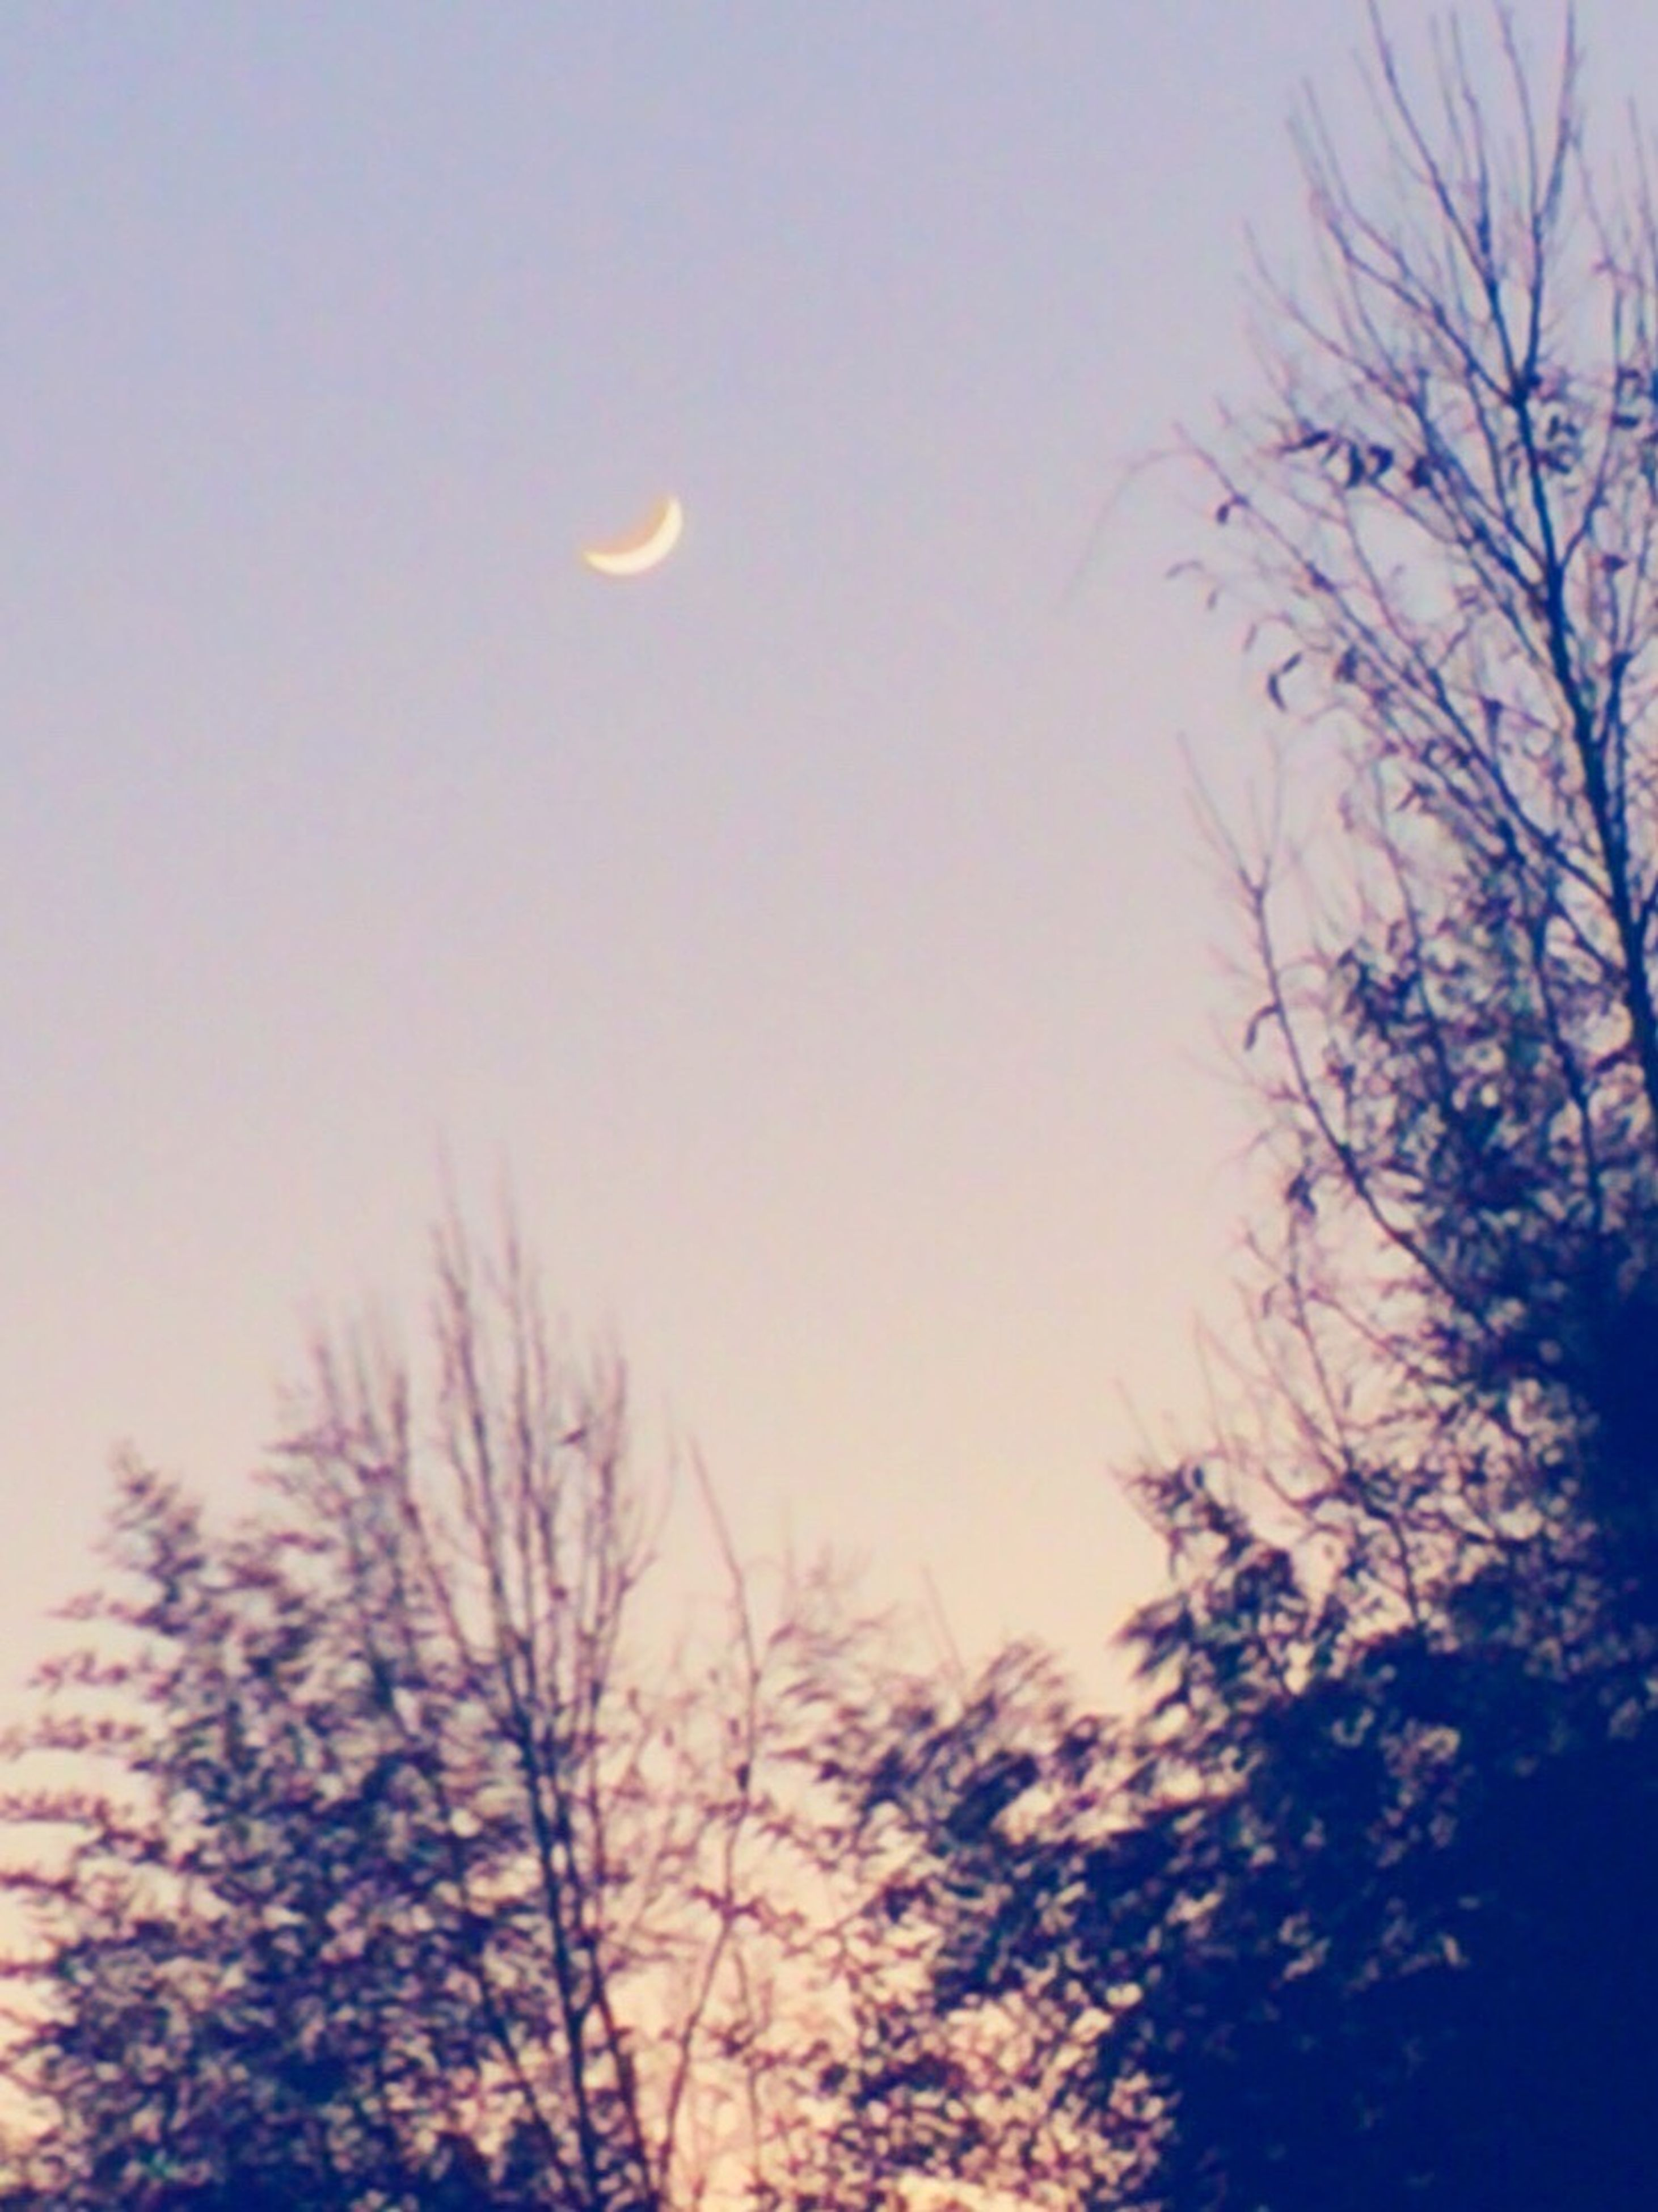 low angle view, moon, bare tree, clear sky, tree, beauty in nature, tranquility, silhouette, scenics, nature, sky, tranquil scene, branch, copy space, sunset, dusk, outdoors, full moon, idyllic, no people